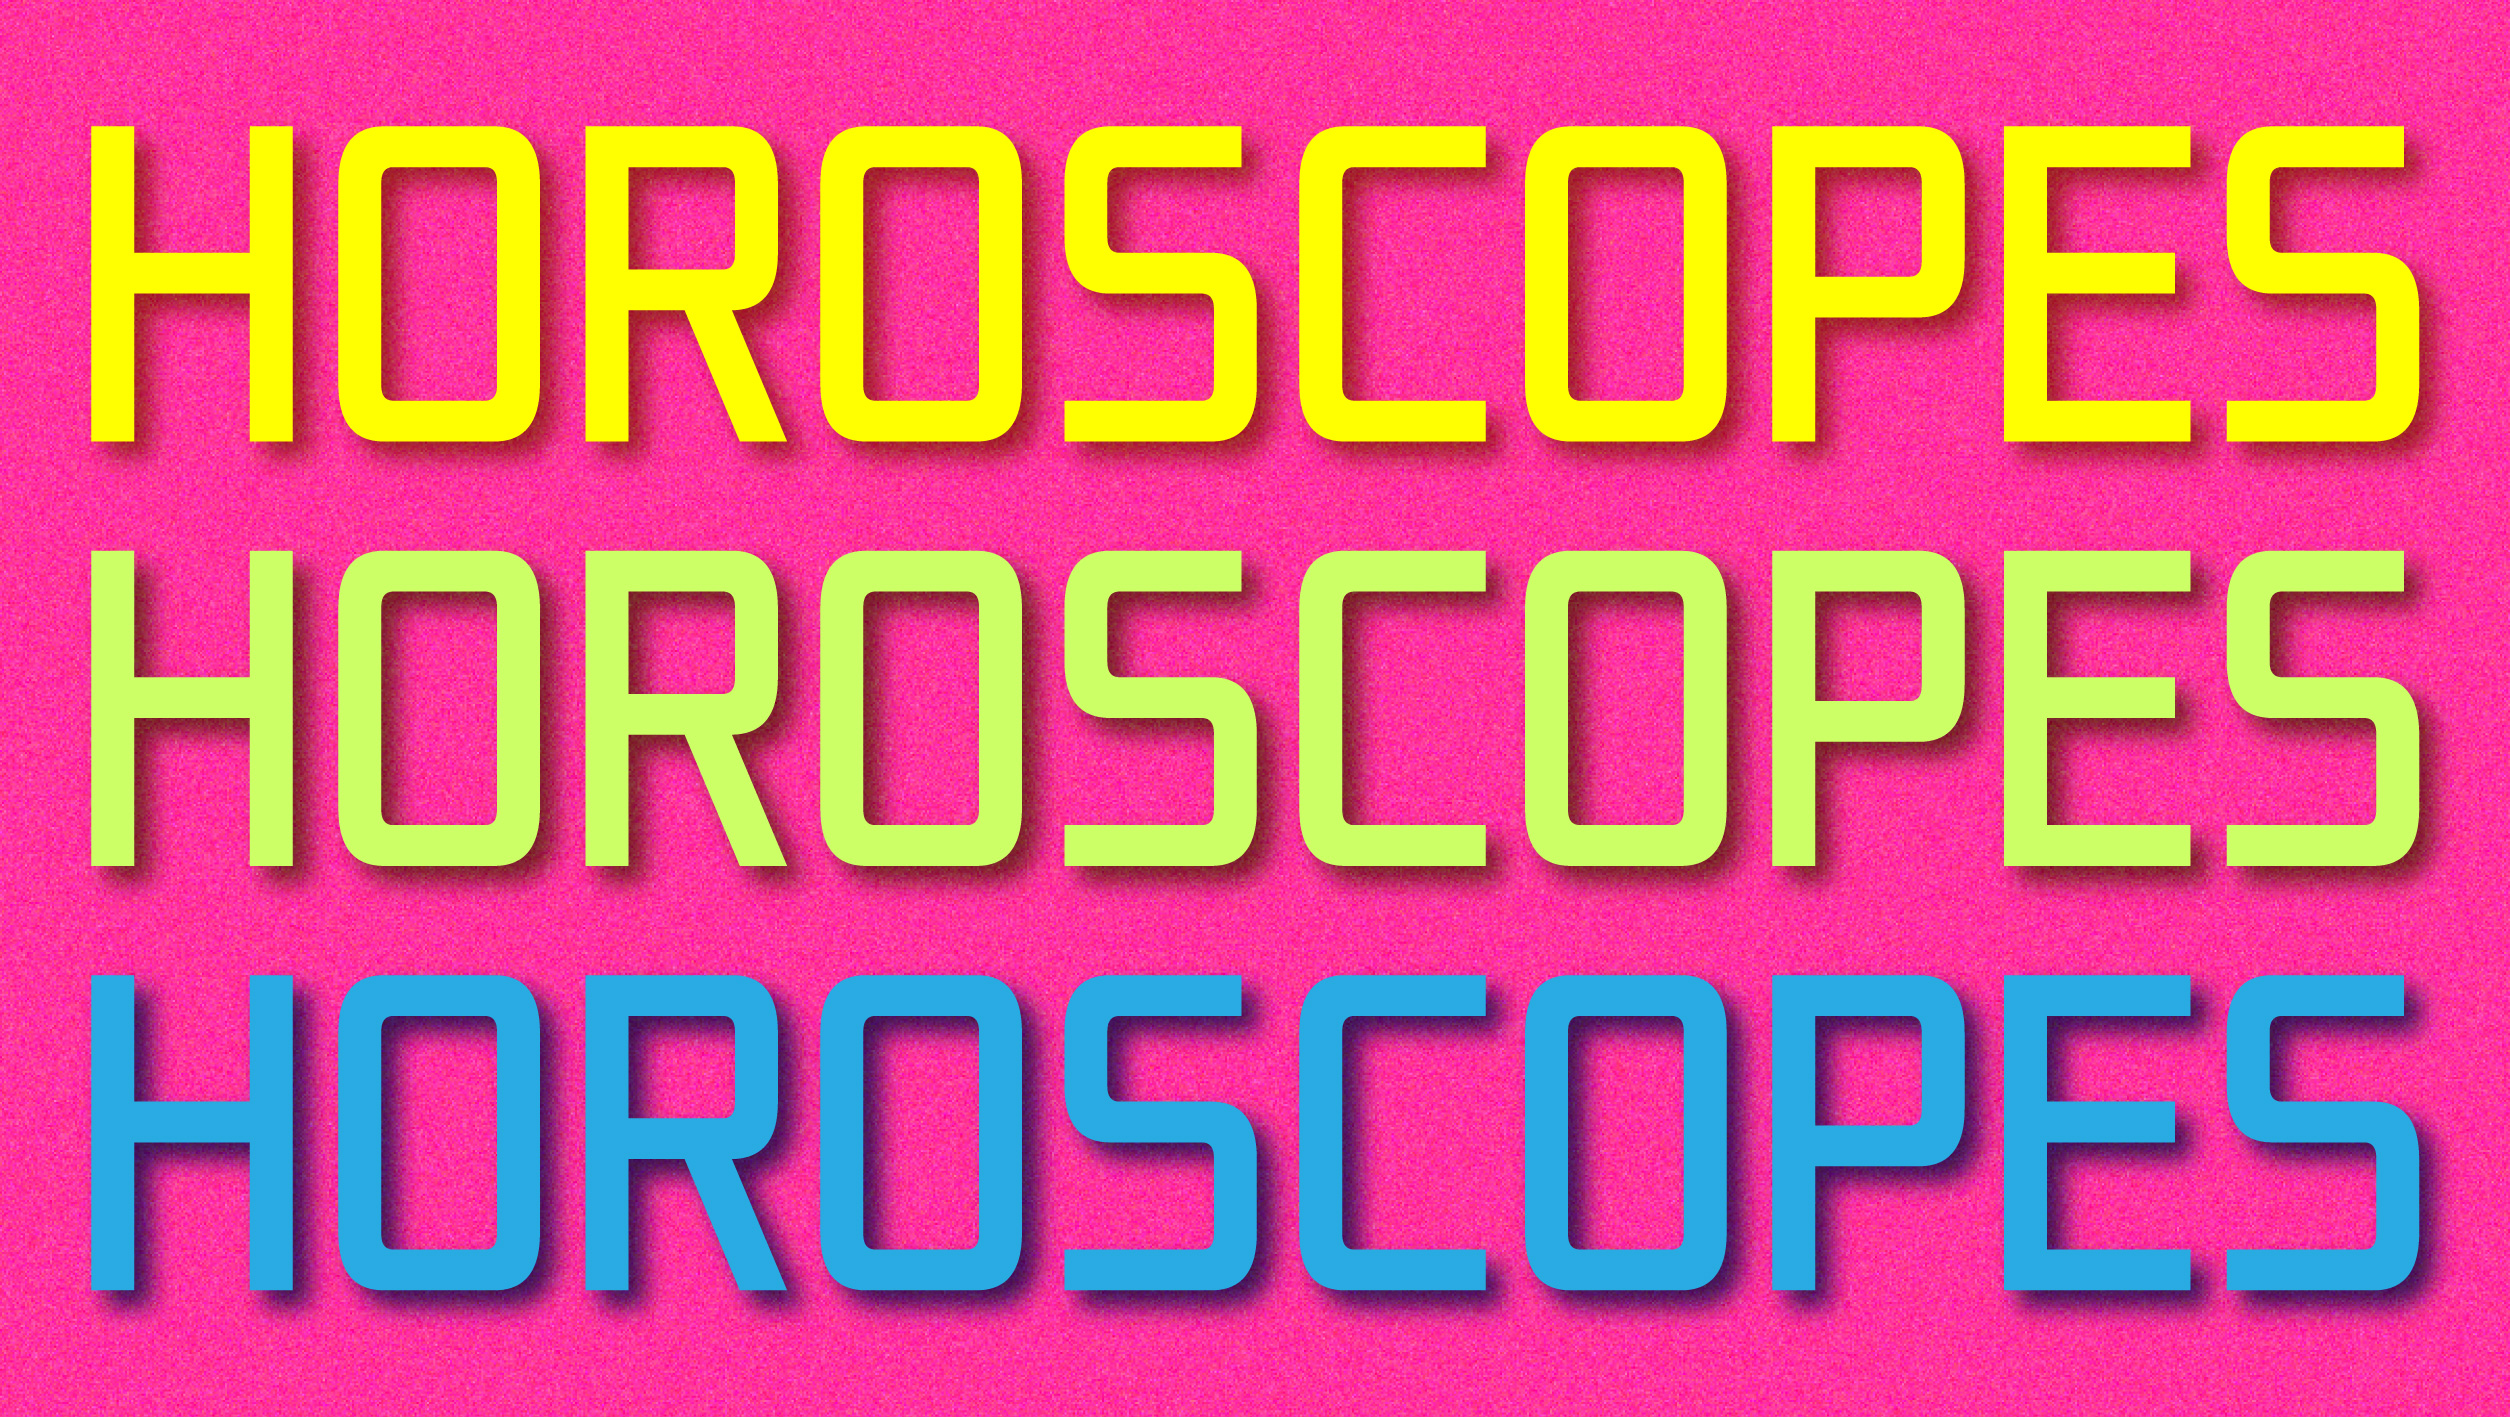 daily horoscope for march 13